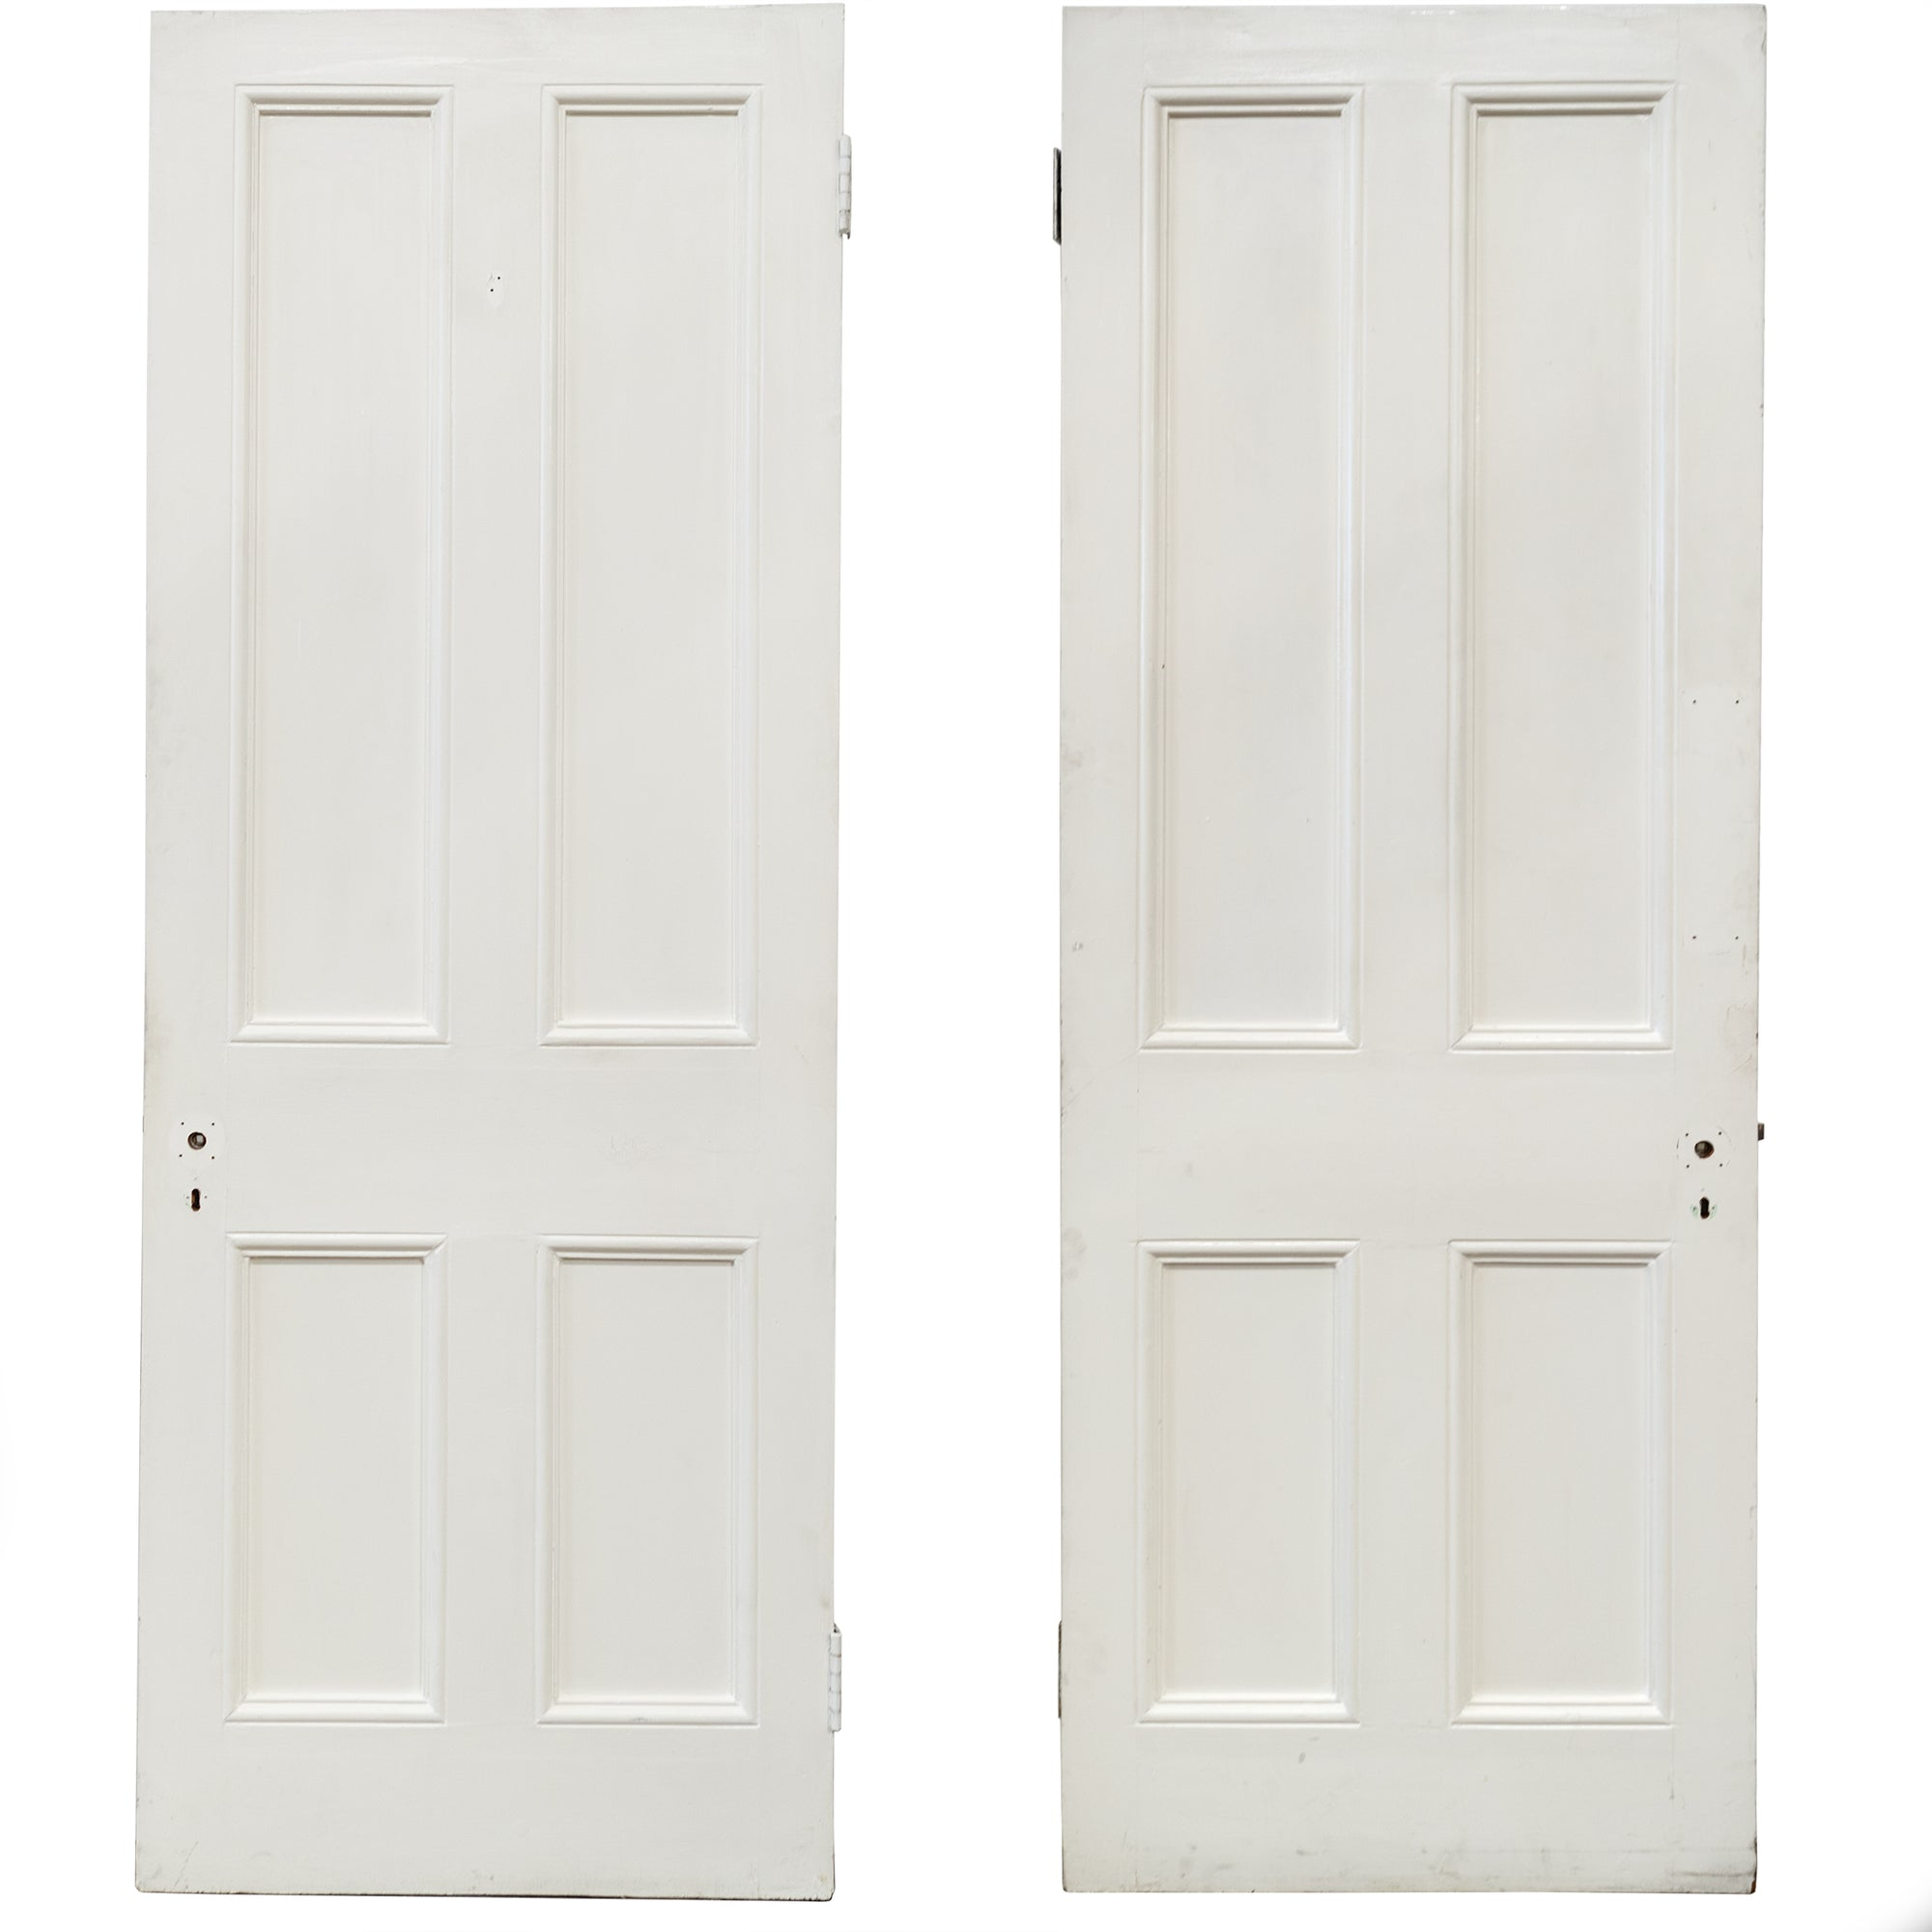 Antique Victorian 4 Panel Door - 208cm x 75cm | The Architectural Forum